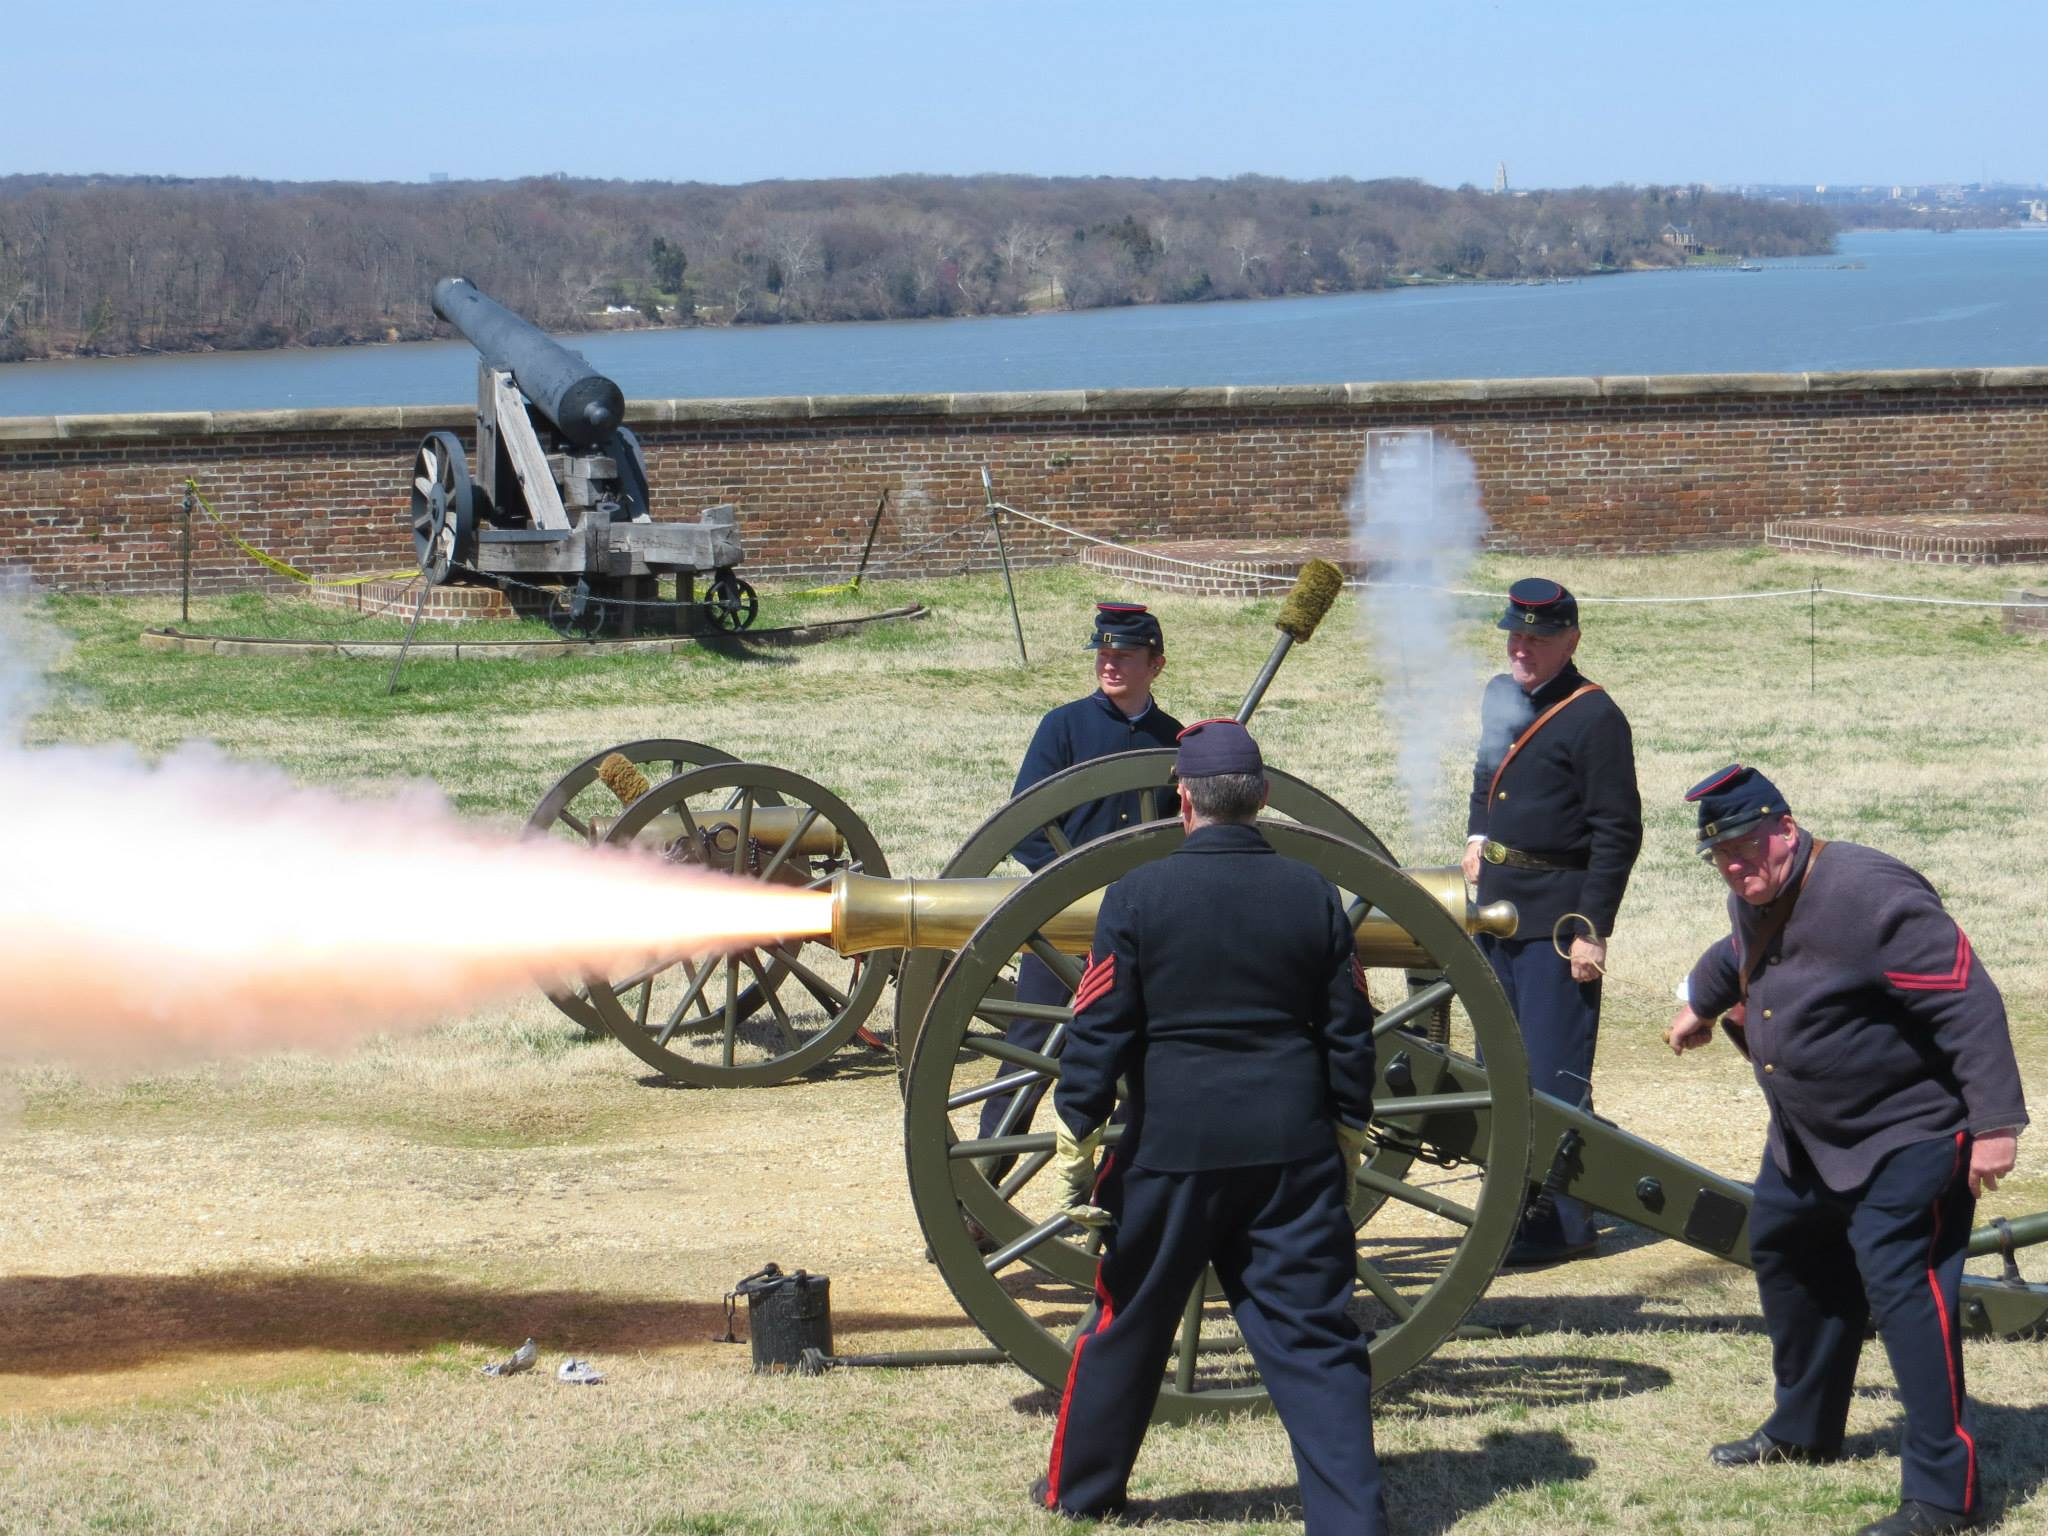 Park staff and volunteers in Civil War uniforms firing a cannon.